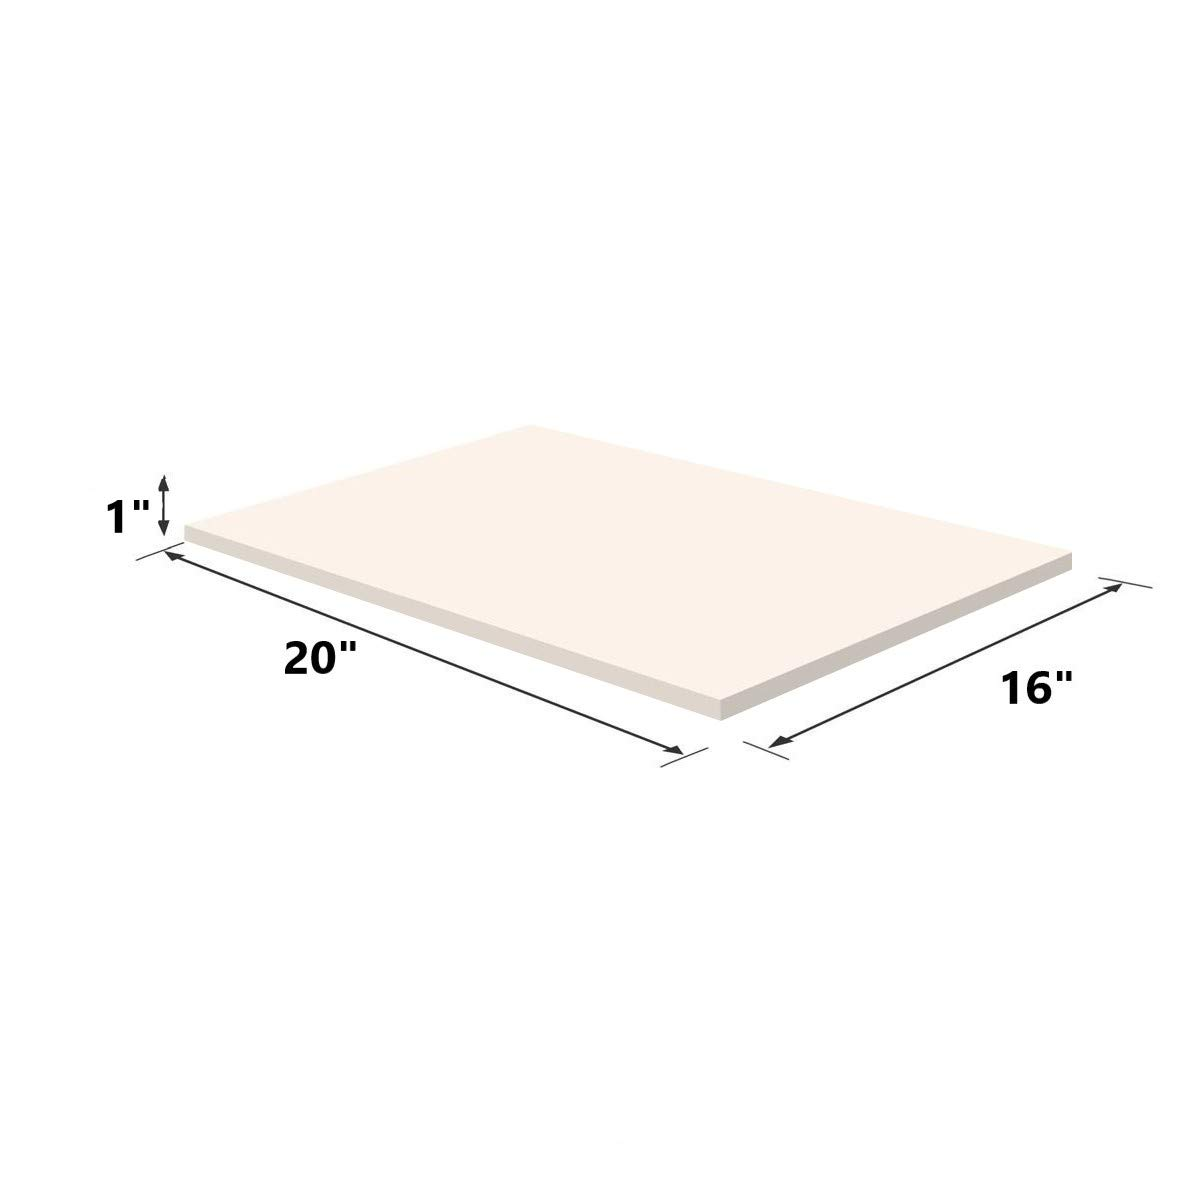 Pillows Upholstery Visco Memory Foam Sheet- 3.5 lb High Density 1x20x16- Luxury Quality for Sofa Chair Cushions Doctor Recommended for Backache /& Bed Sores by Dream Solutions USA